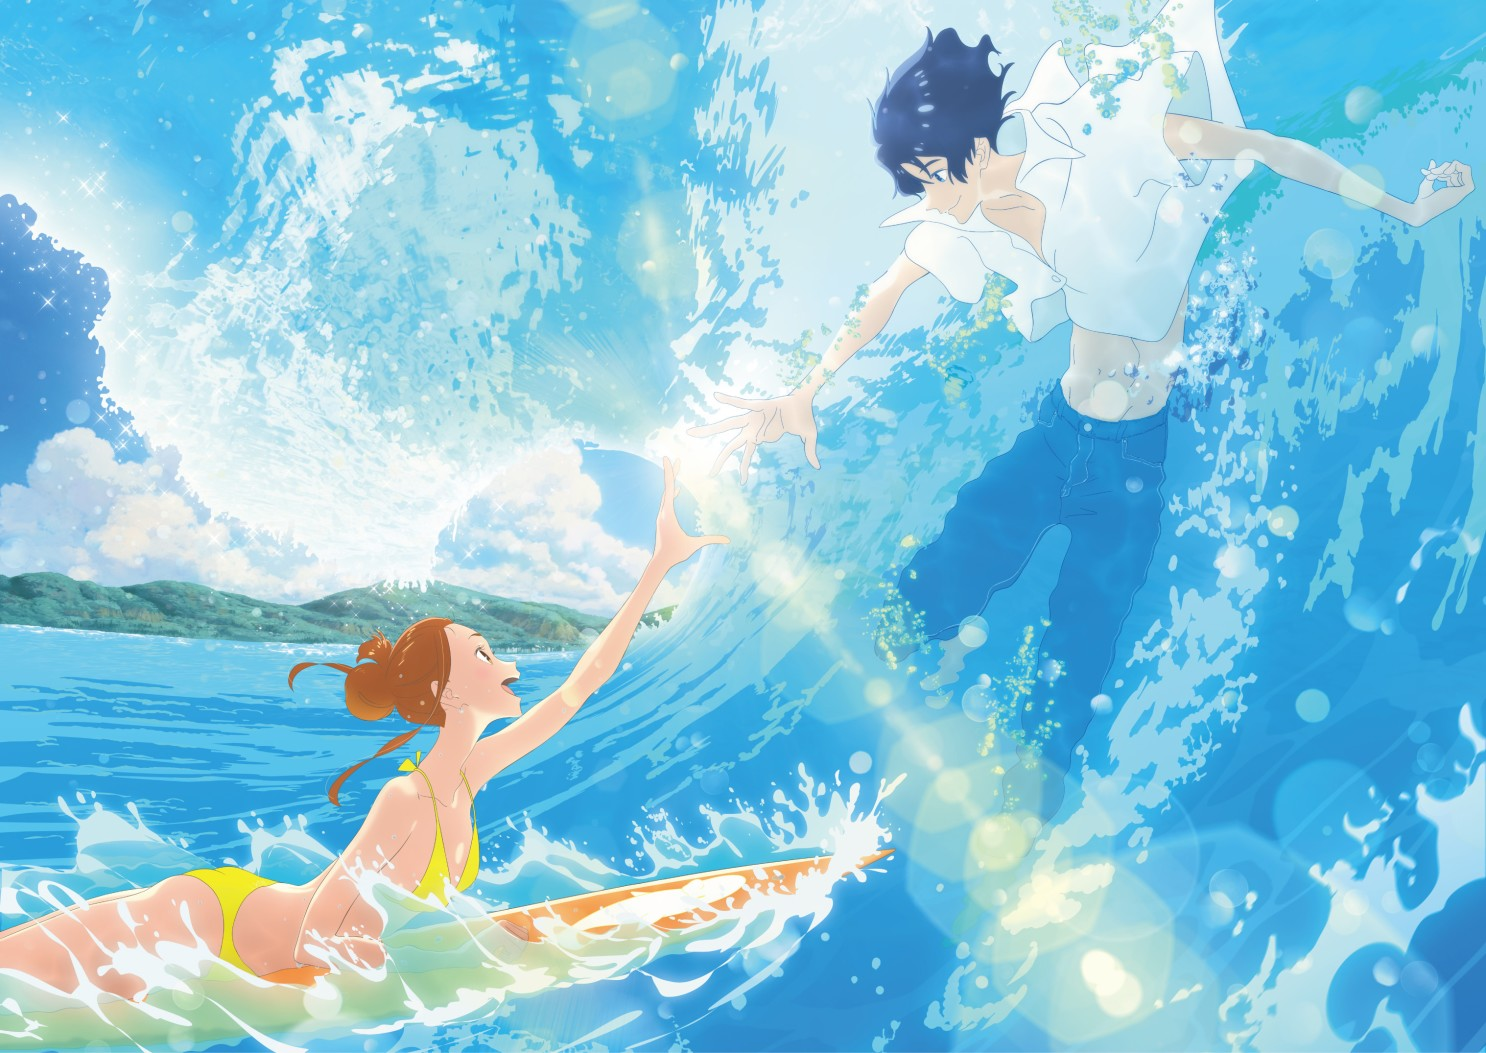 Geek It! Anime Film Review: Ride Your Wave (2019)